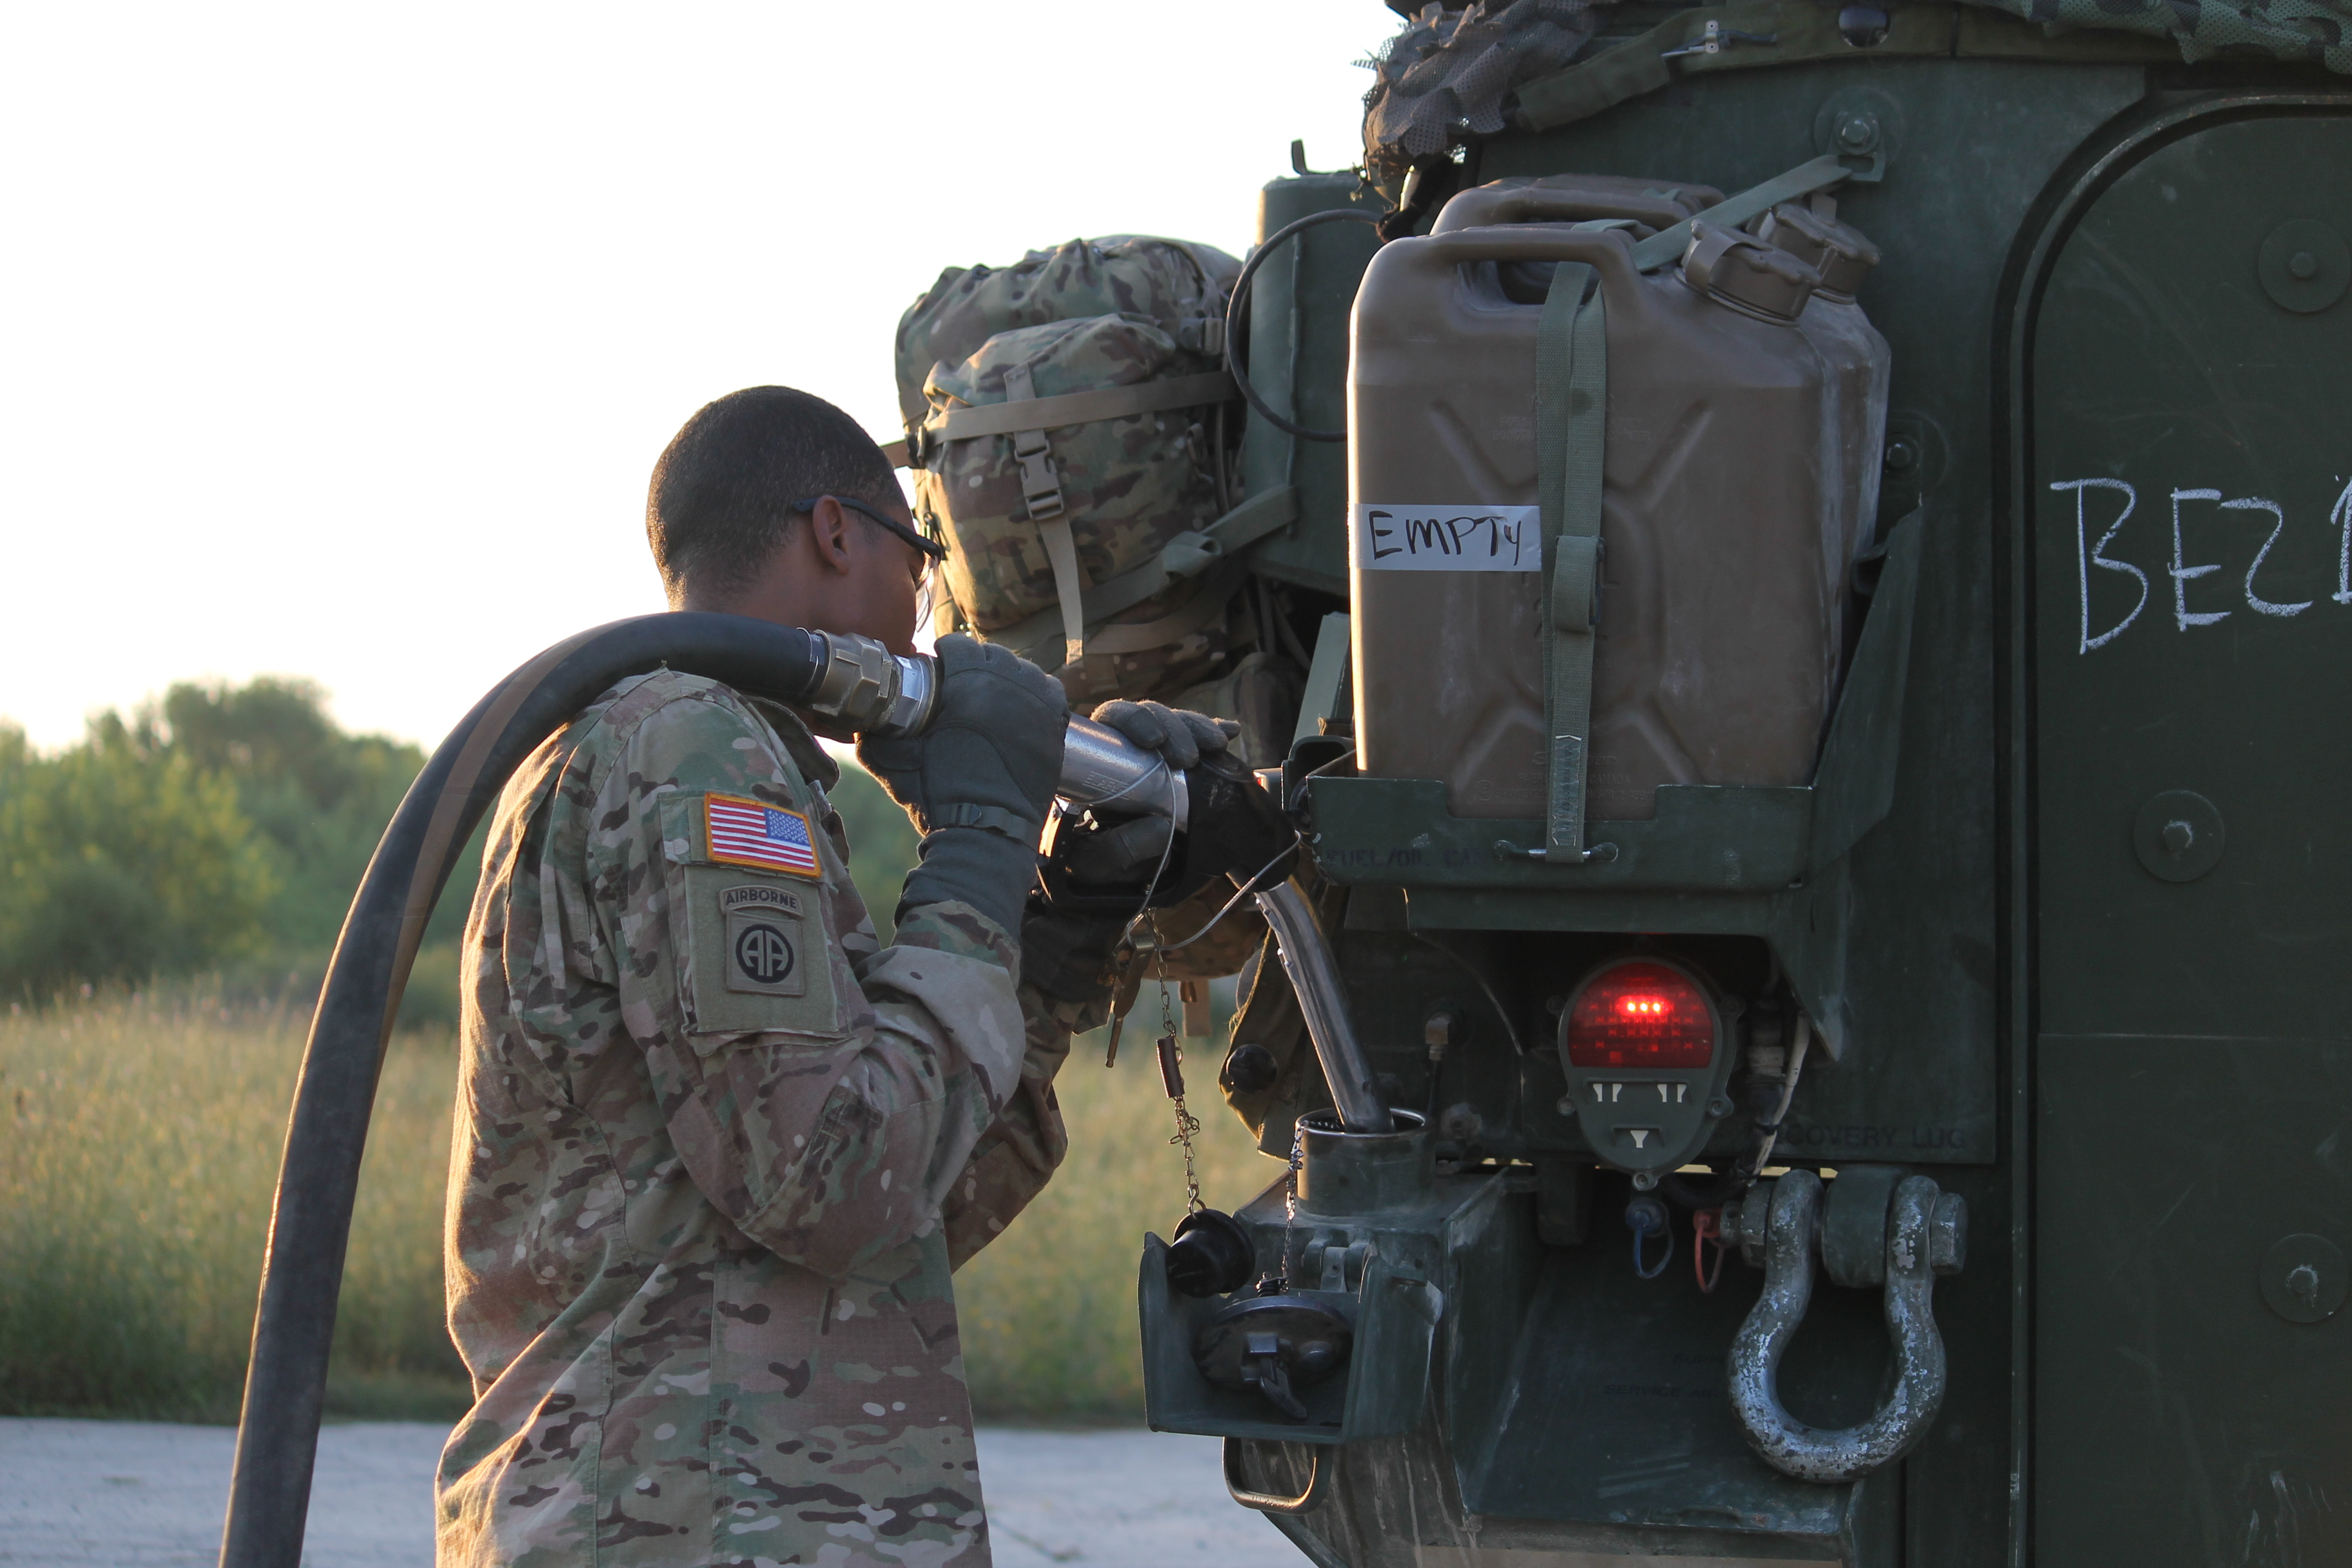 A soldier refuels the U.S. Stryker, preparing the vehicle to head over to the seized airfield, where the 173rd awaits support. (Jen Judson/Staff)